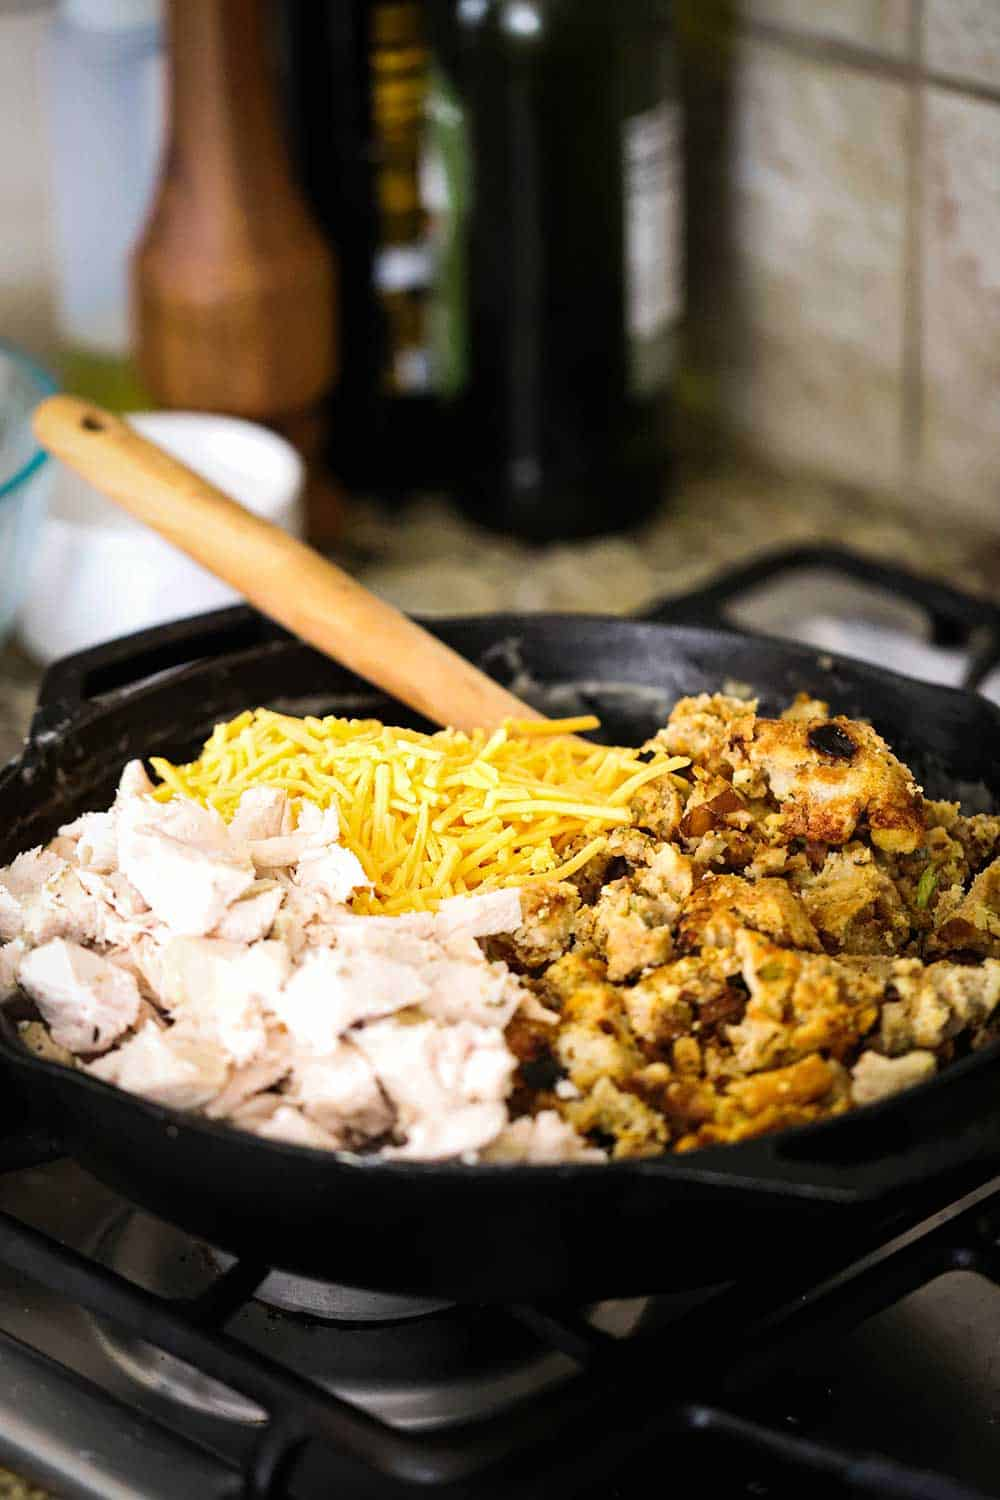 A large black cast-iron skillet filled with roast turkey pieces, broken up dressing, and shredded cheddar cheese, along with a wooden spoon.